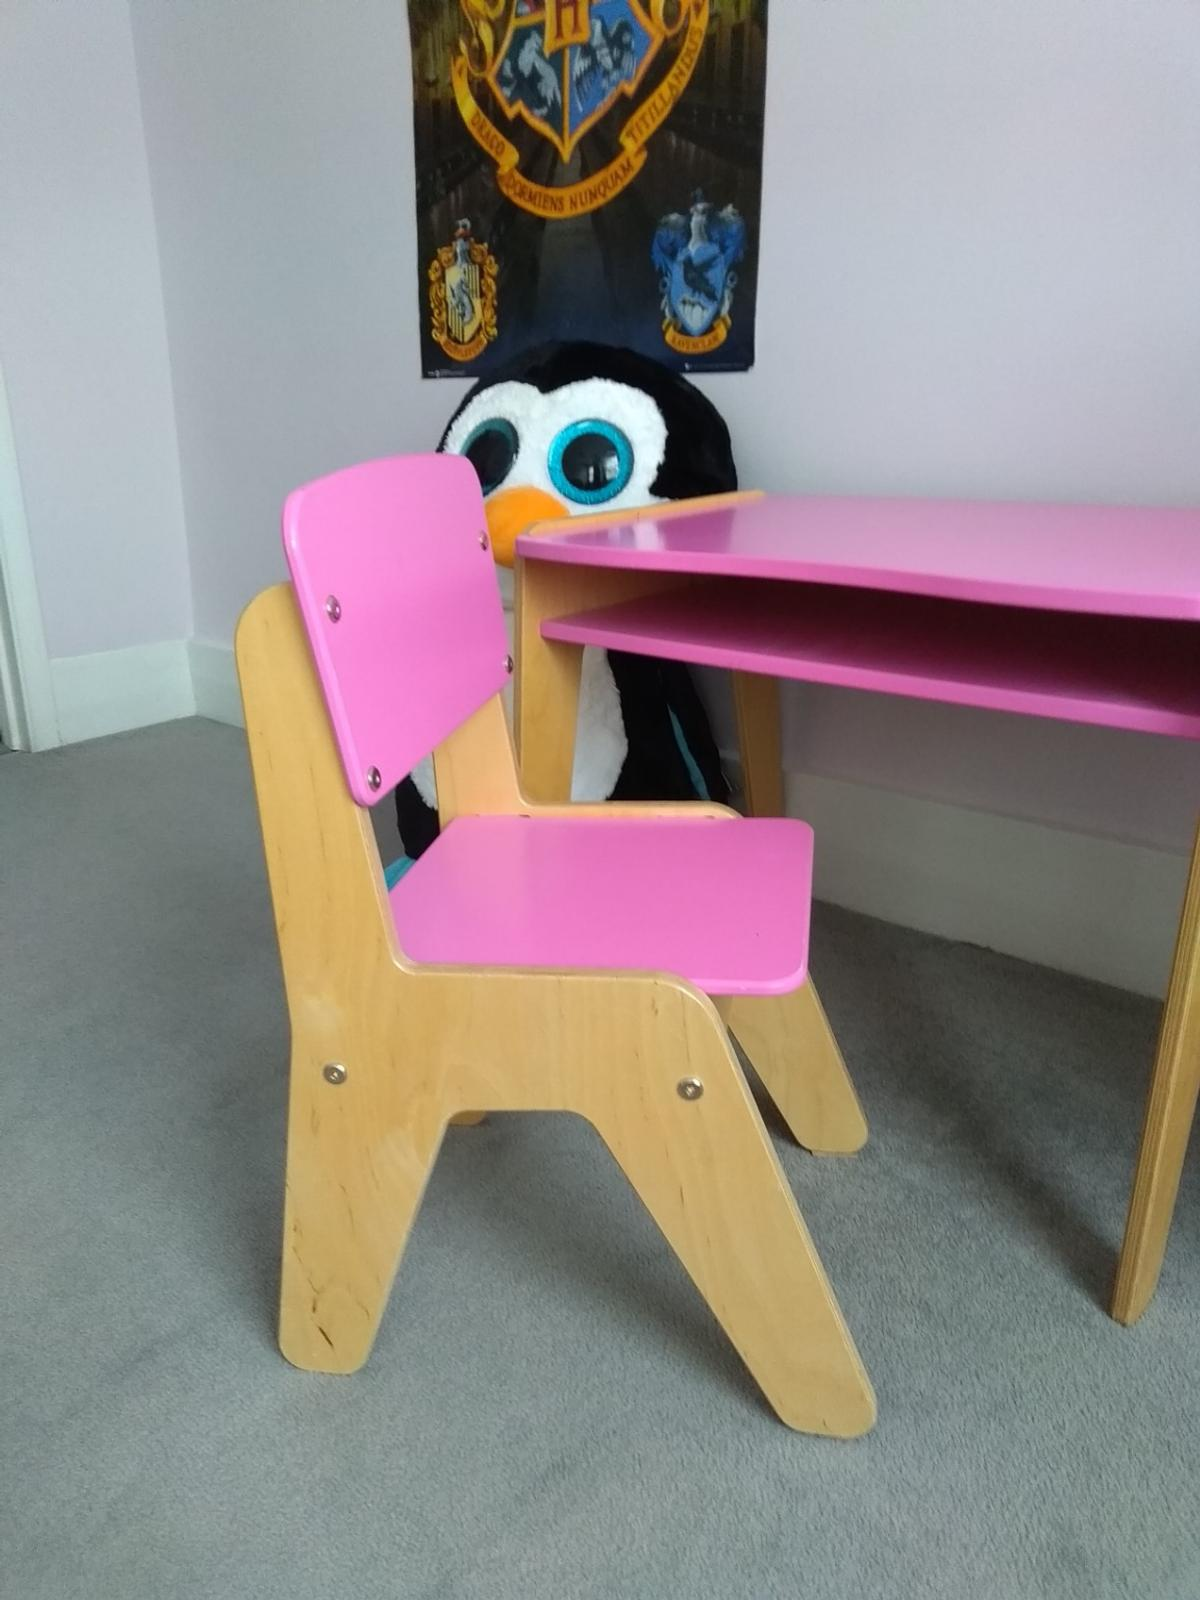 Tremendous Children Pink Wooden Desk And Chair In W14 Fulham For 40 00 Gamerscity Chair Design For Home Gamerscityorg